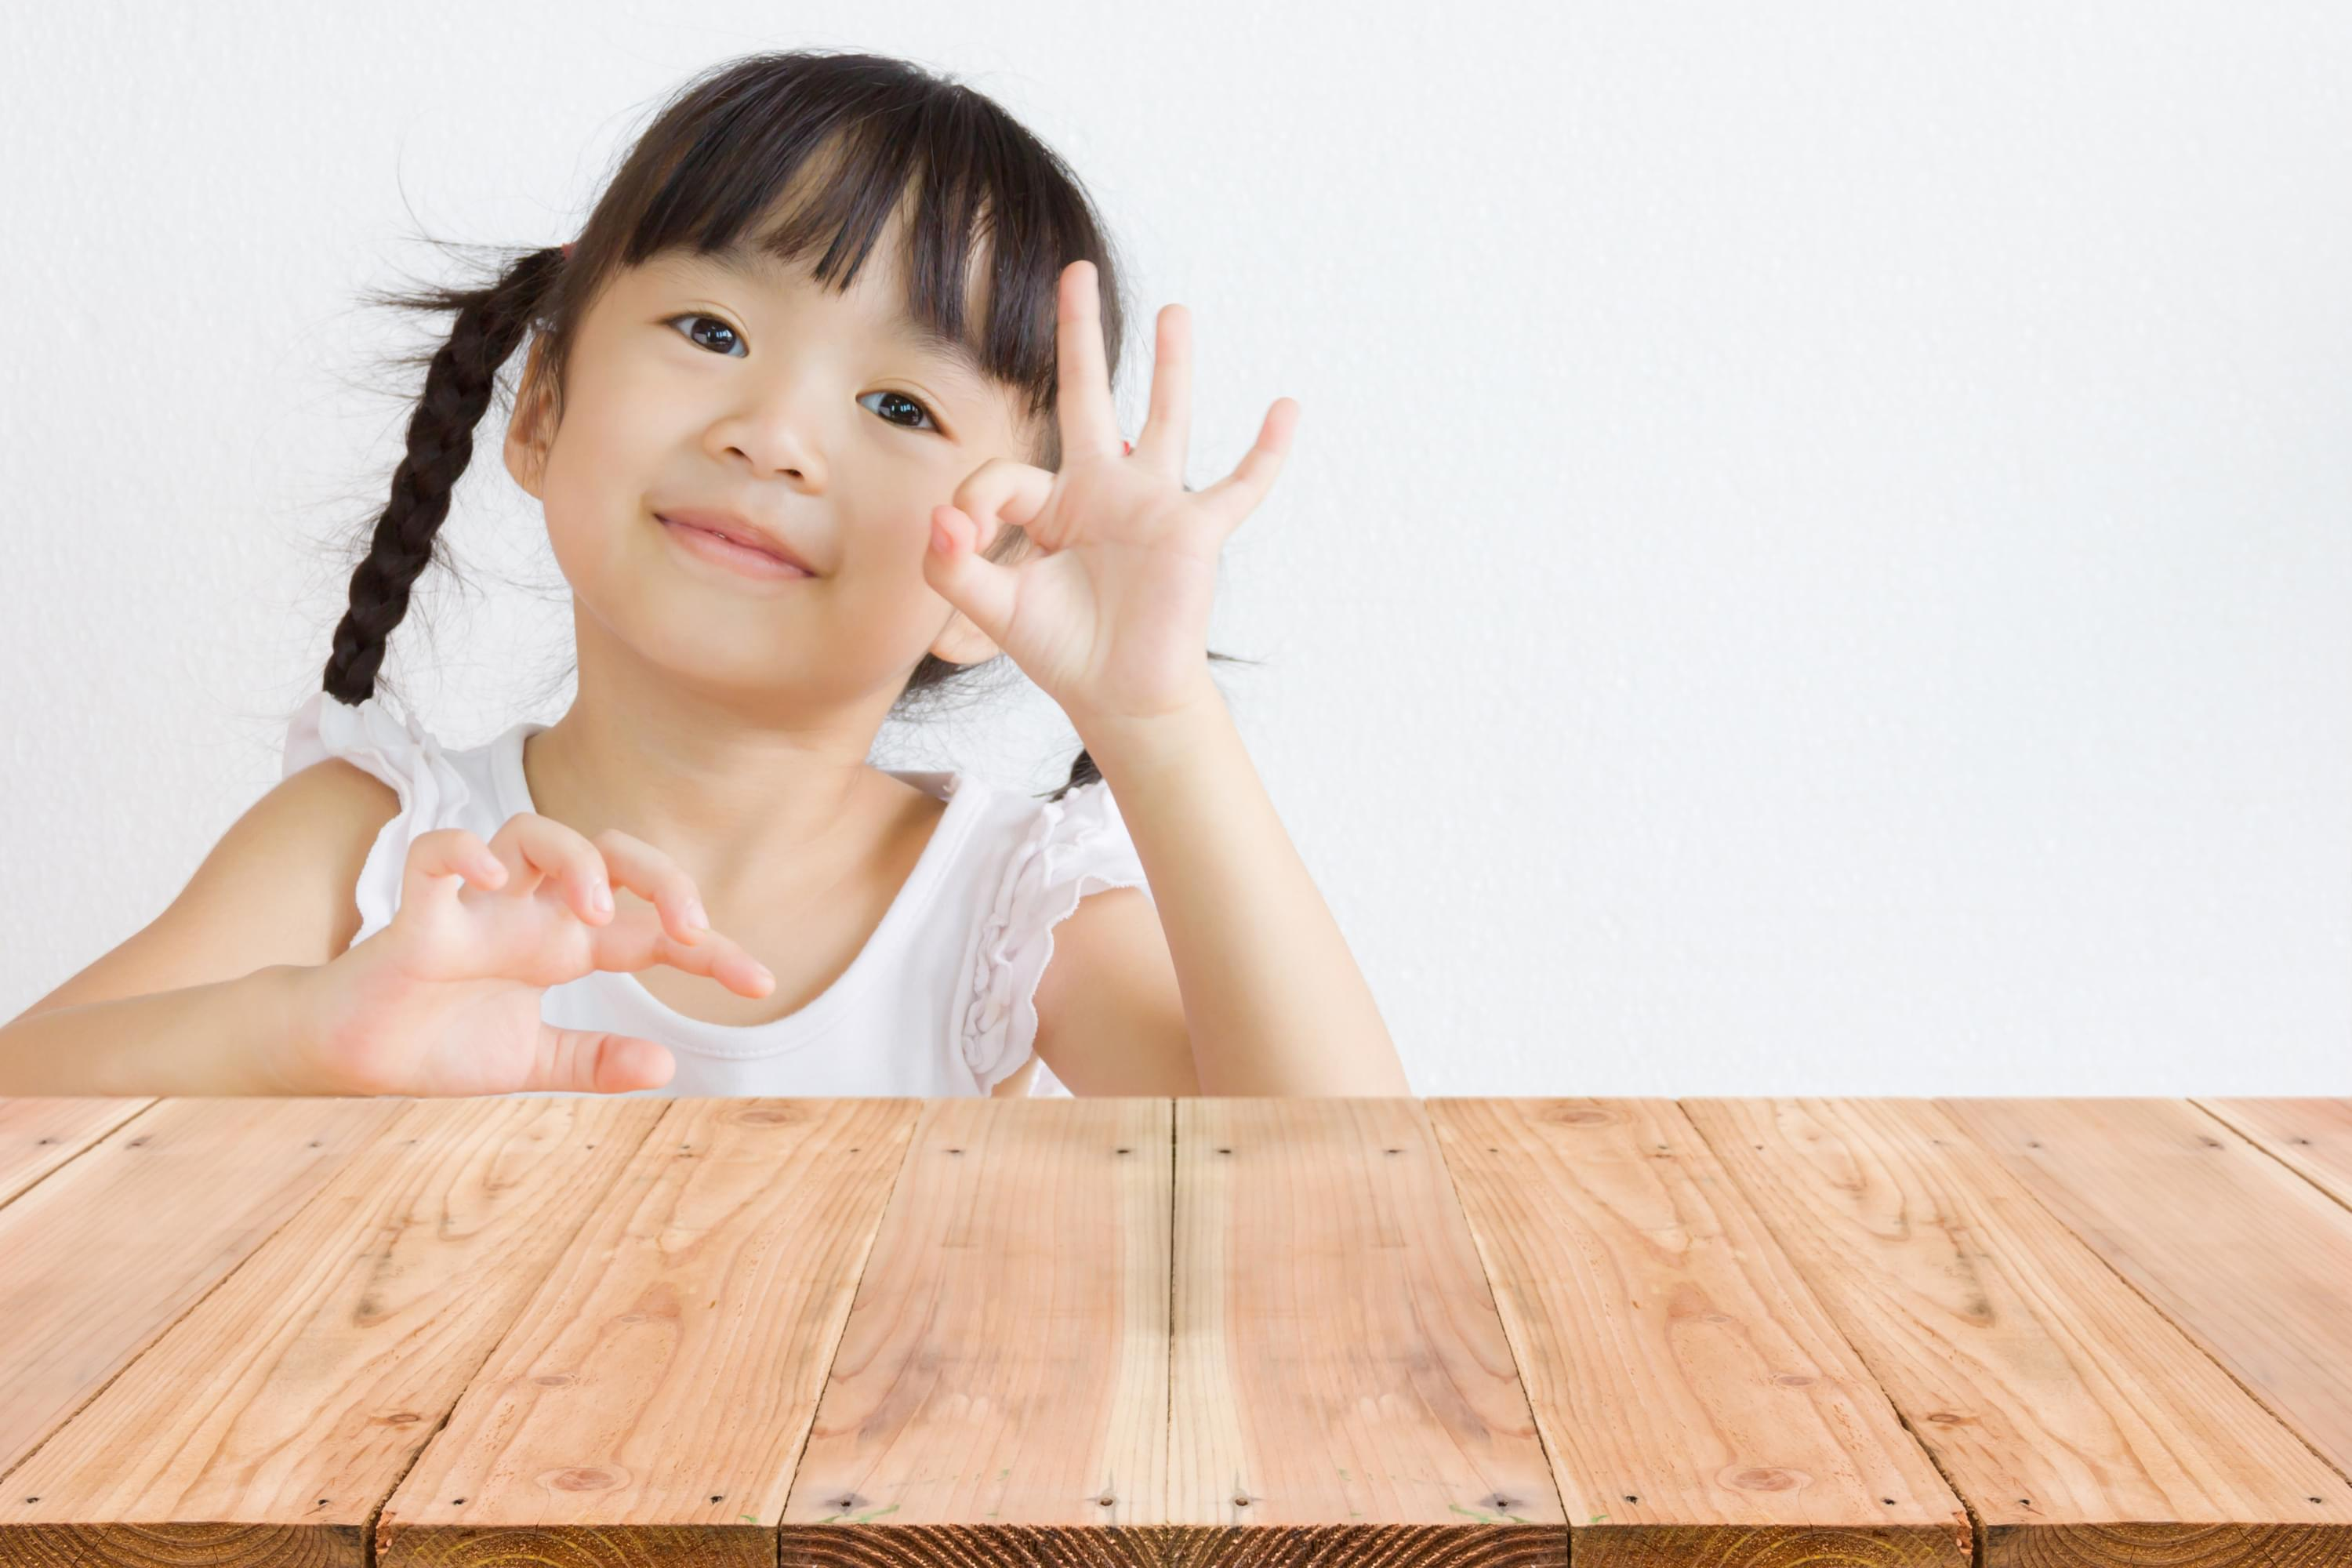 Picture of a girl making the sign for the letter F